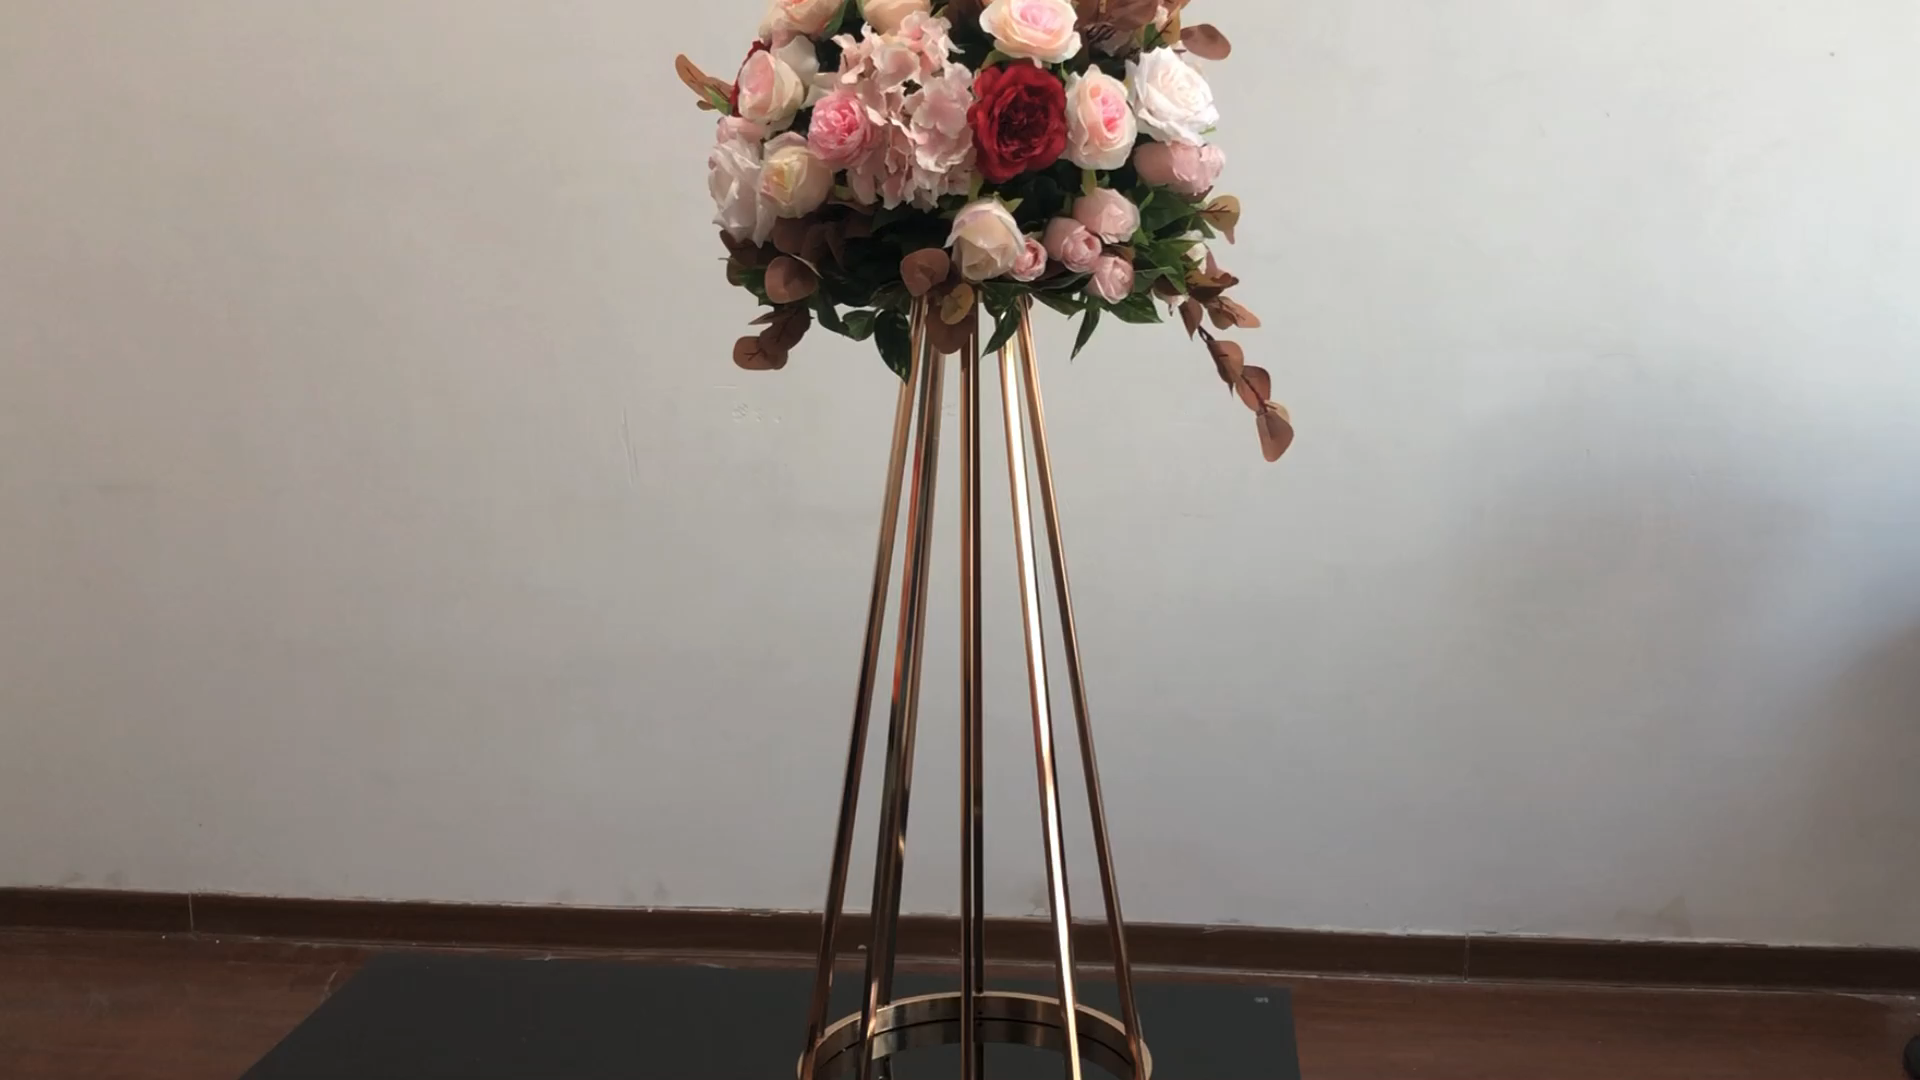 ZT-417G  Hot selling  gold metal flower stand for wedding table centerpieces